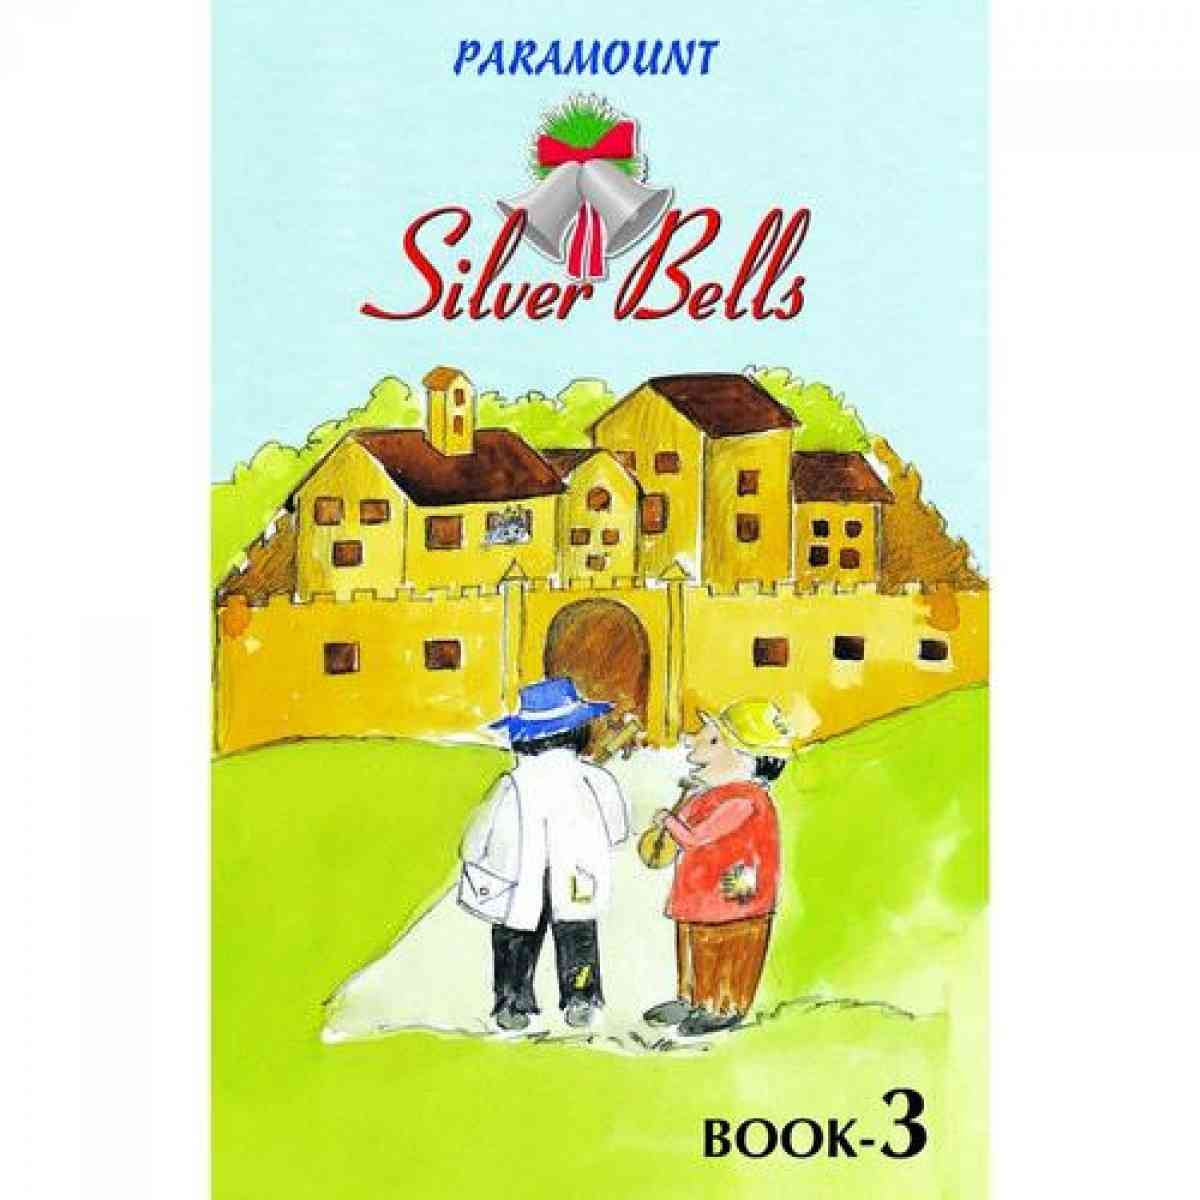 Paramount Silver Bells: Book 3